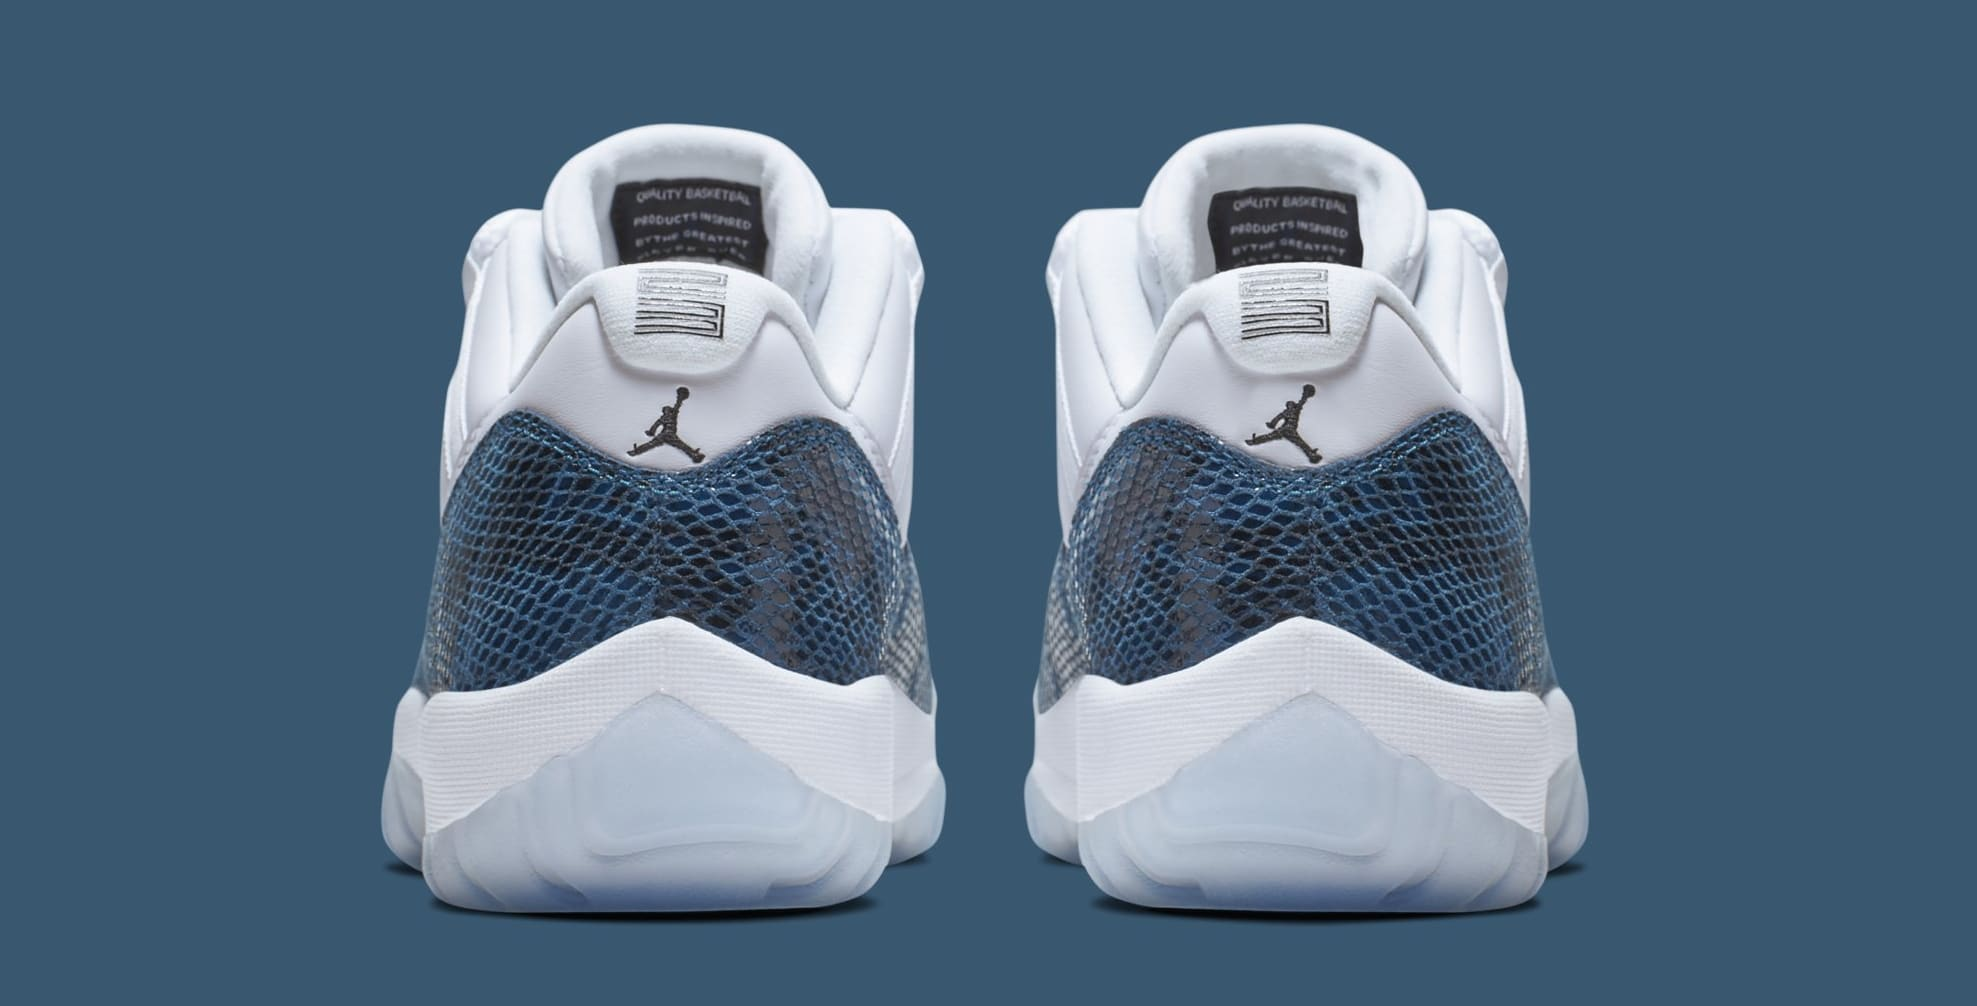 100% authentic 6ce14 a7ccb Image via Nike Air Jordan 11 Low  Blue Snakeskin  CD6846-102 (Heel)